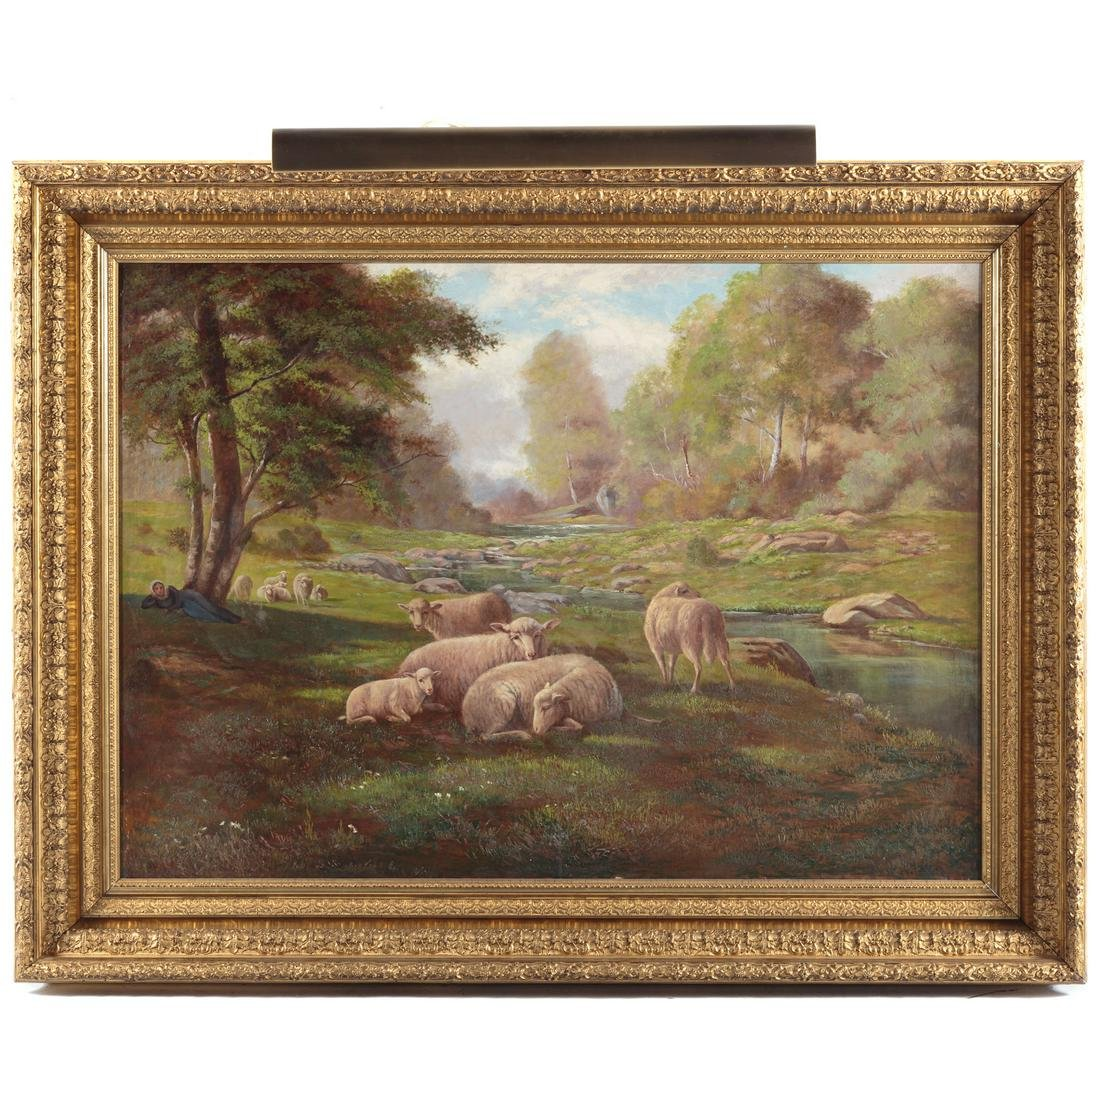 L.M. Newberry. Pastoral Landscape With Sheep